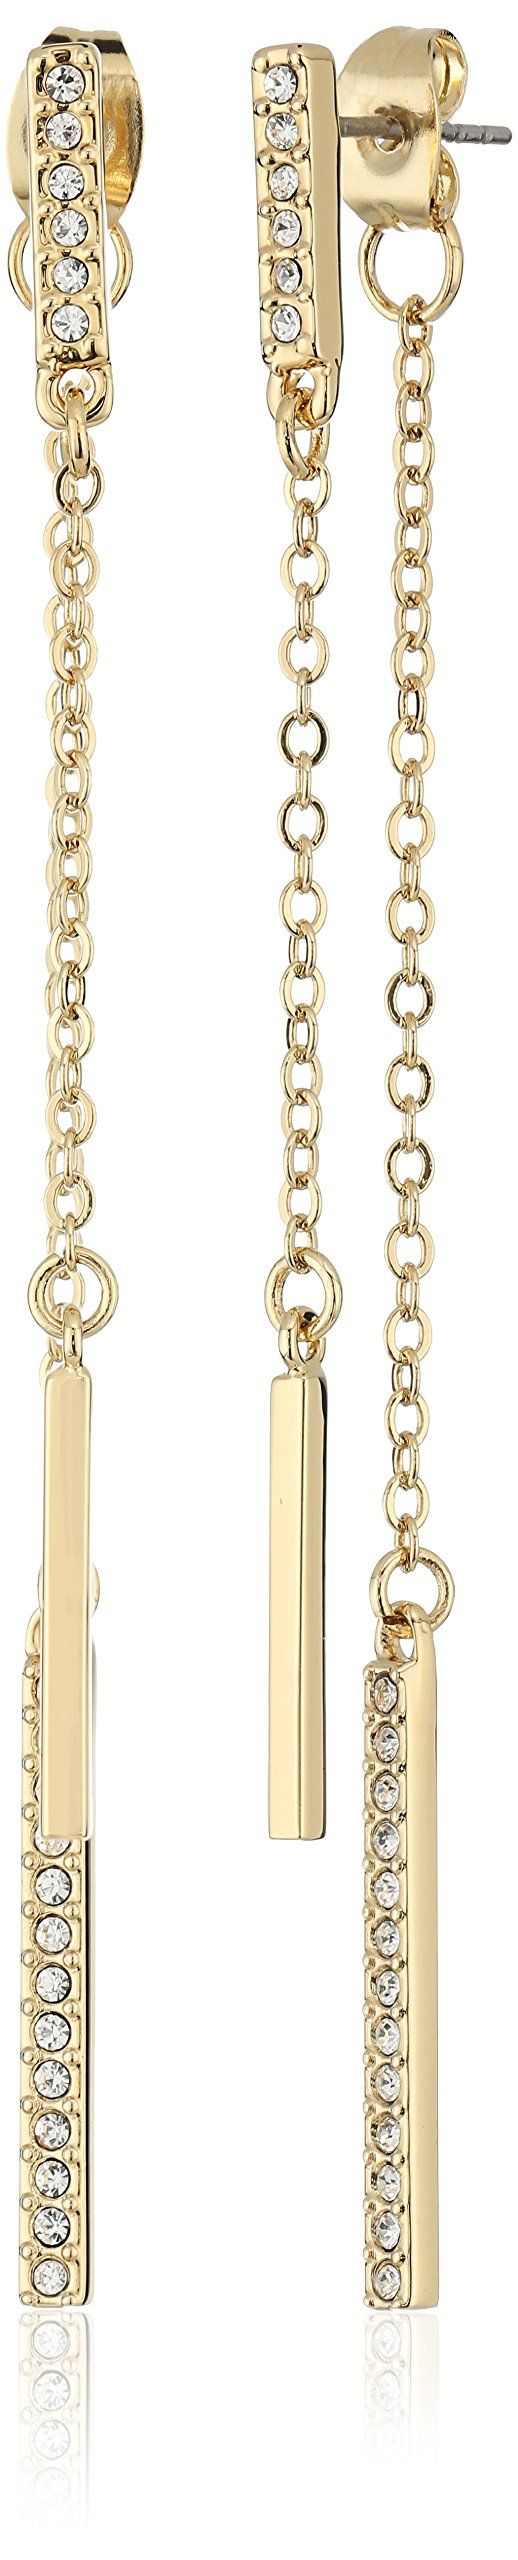 Rebecca Minkoff Pave Bar Front/Back Gold Drop Earrings. Made in China. Gold or Rhodium plated front/back earrings with pave and chain. brass post with butterfly back. Place in pouch when not worn, do not wear in water. Imported.